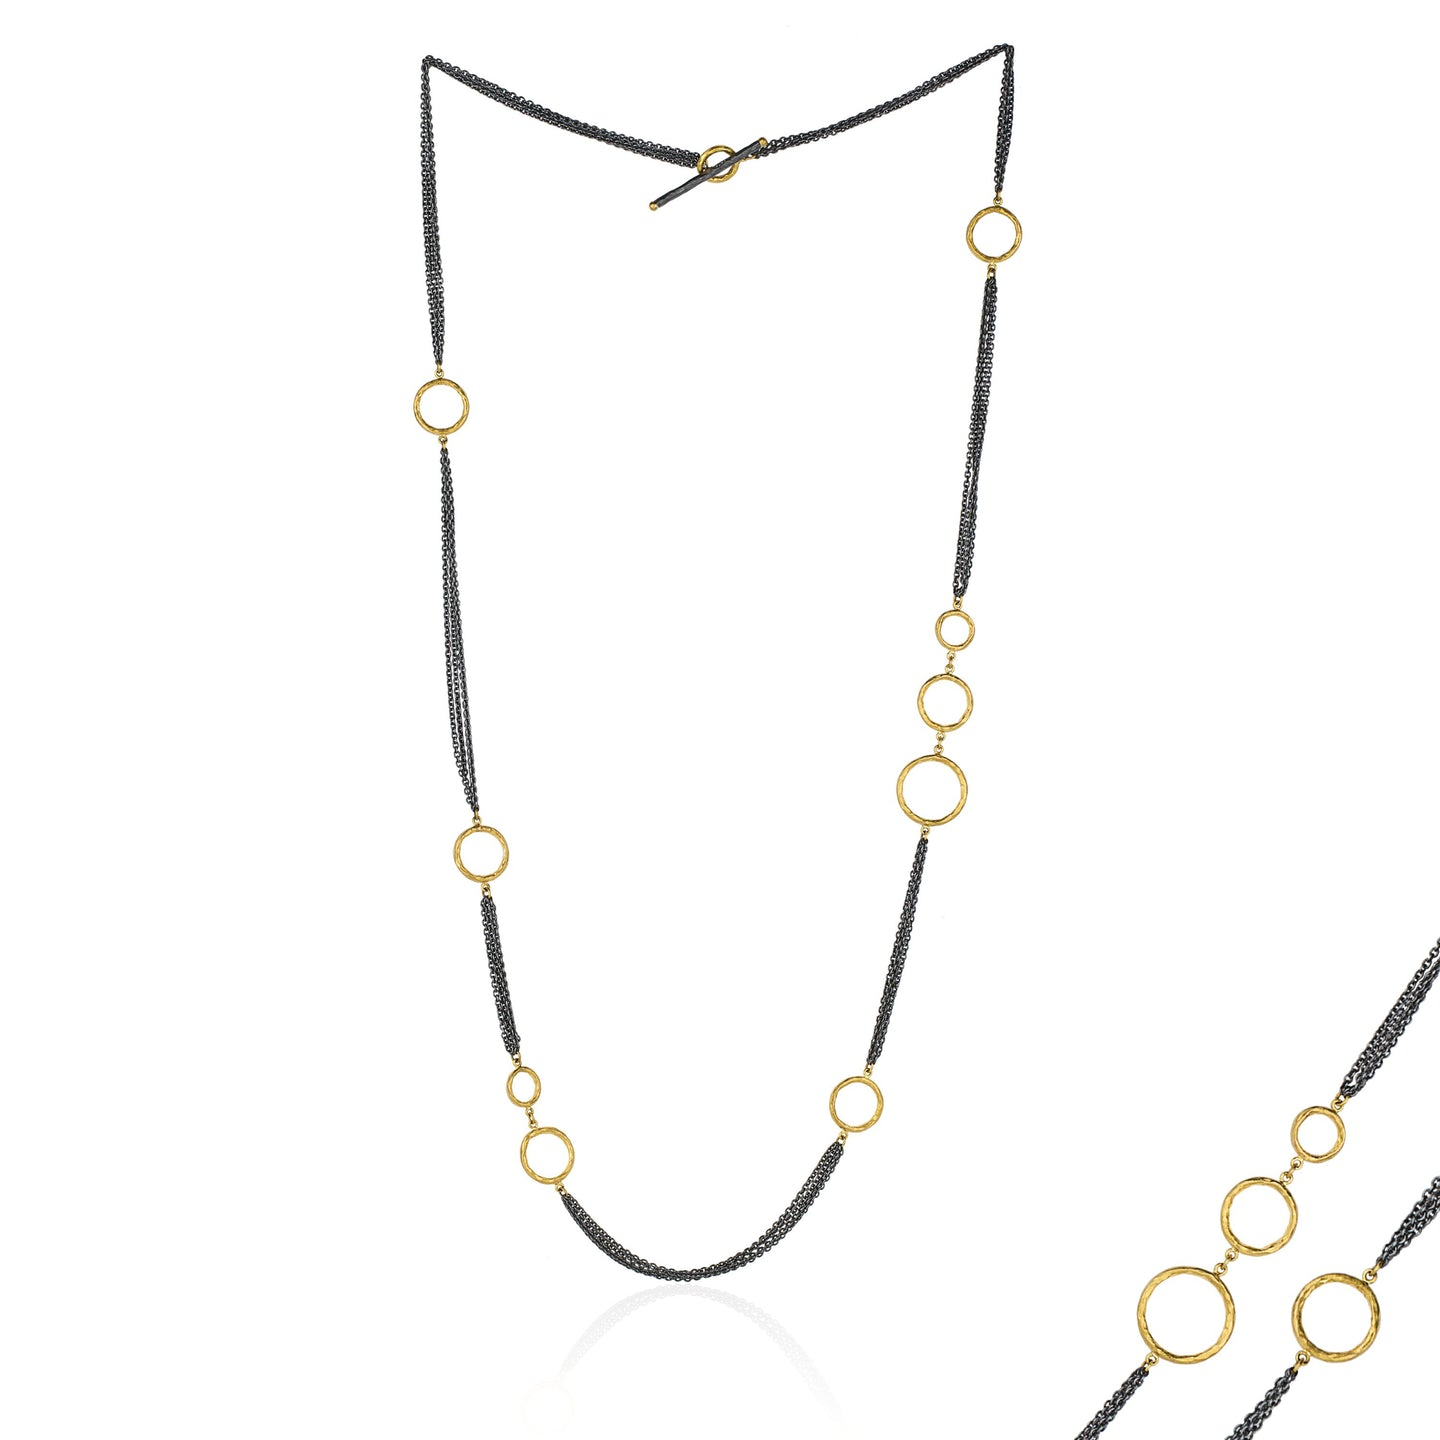 Lika Behar Necklace with Asymmetrical Details